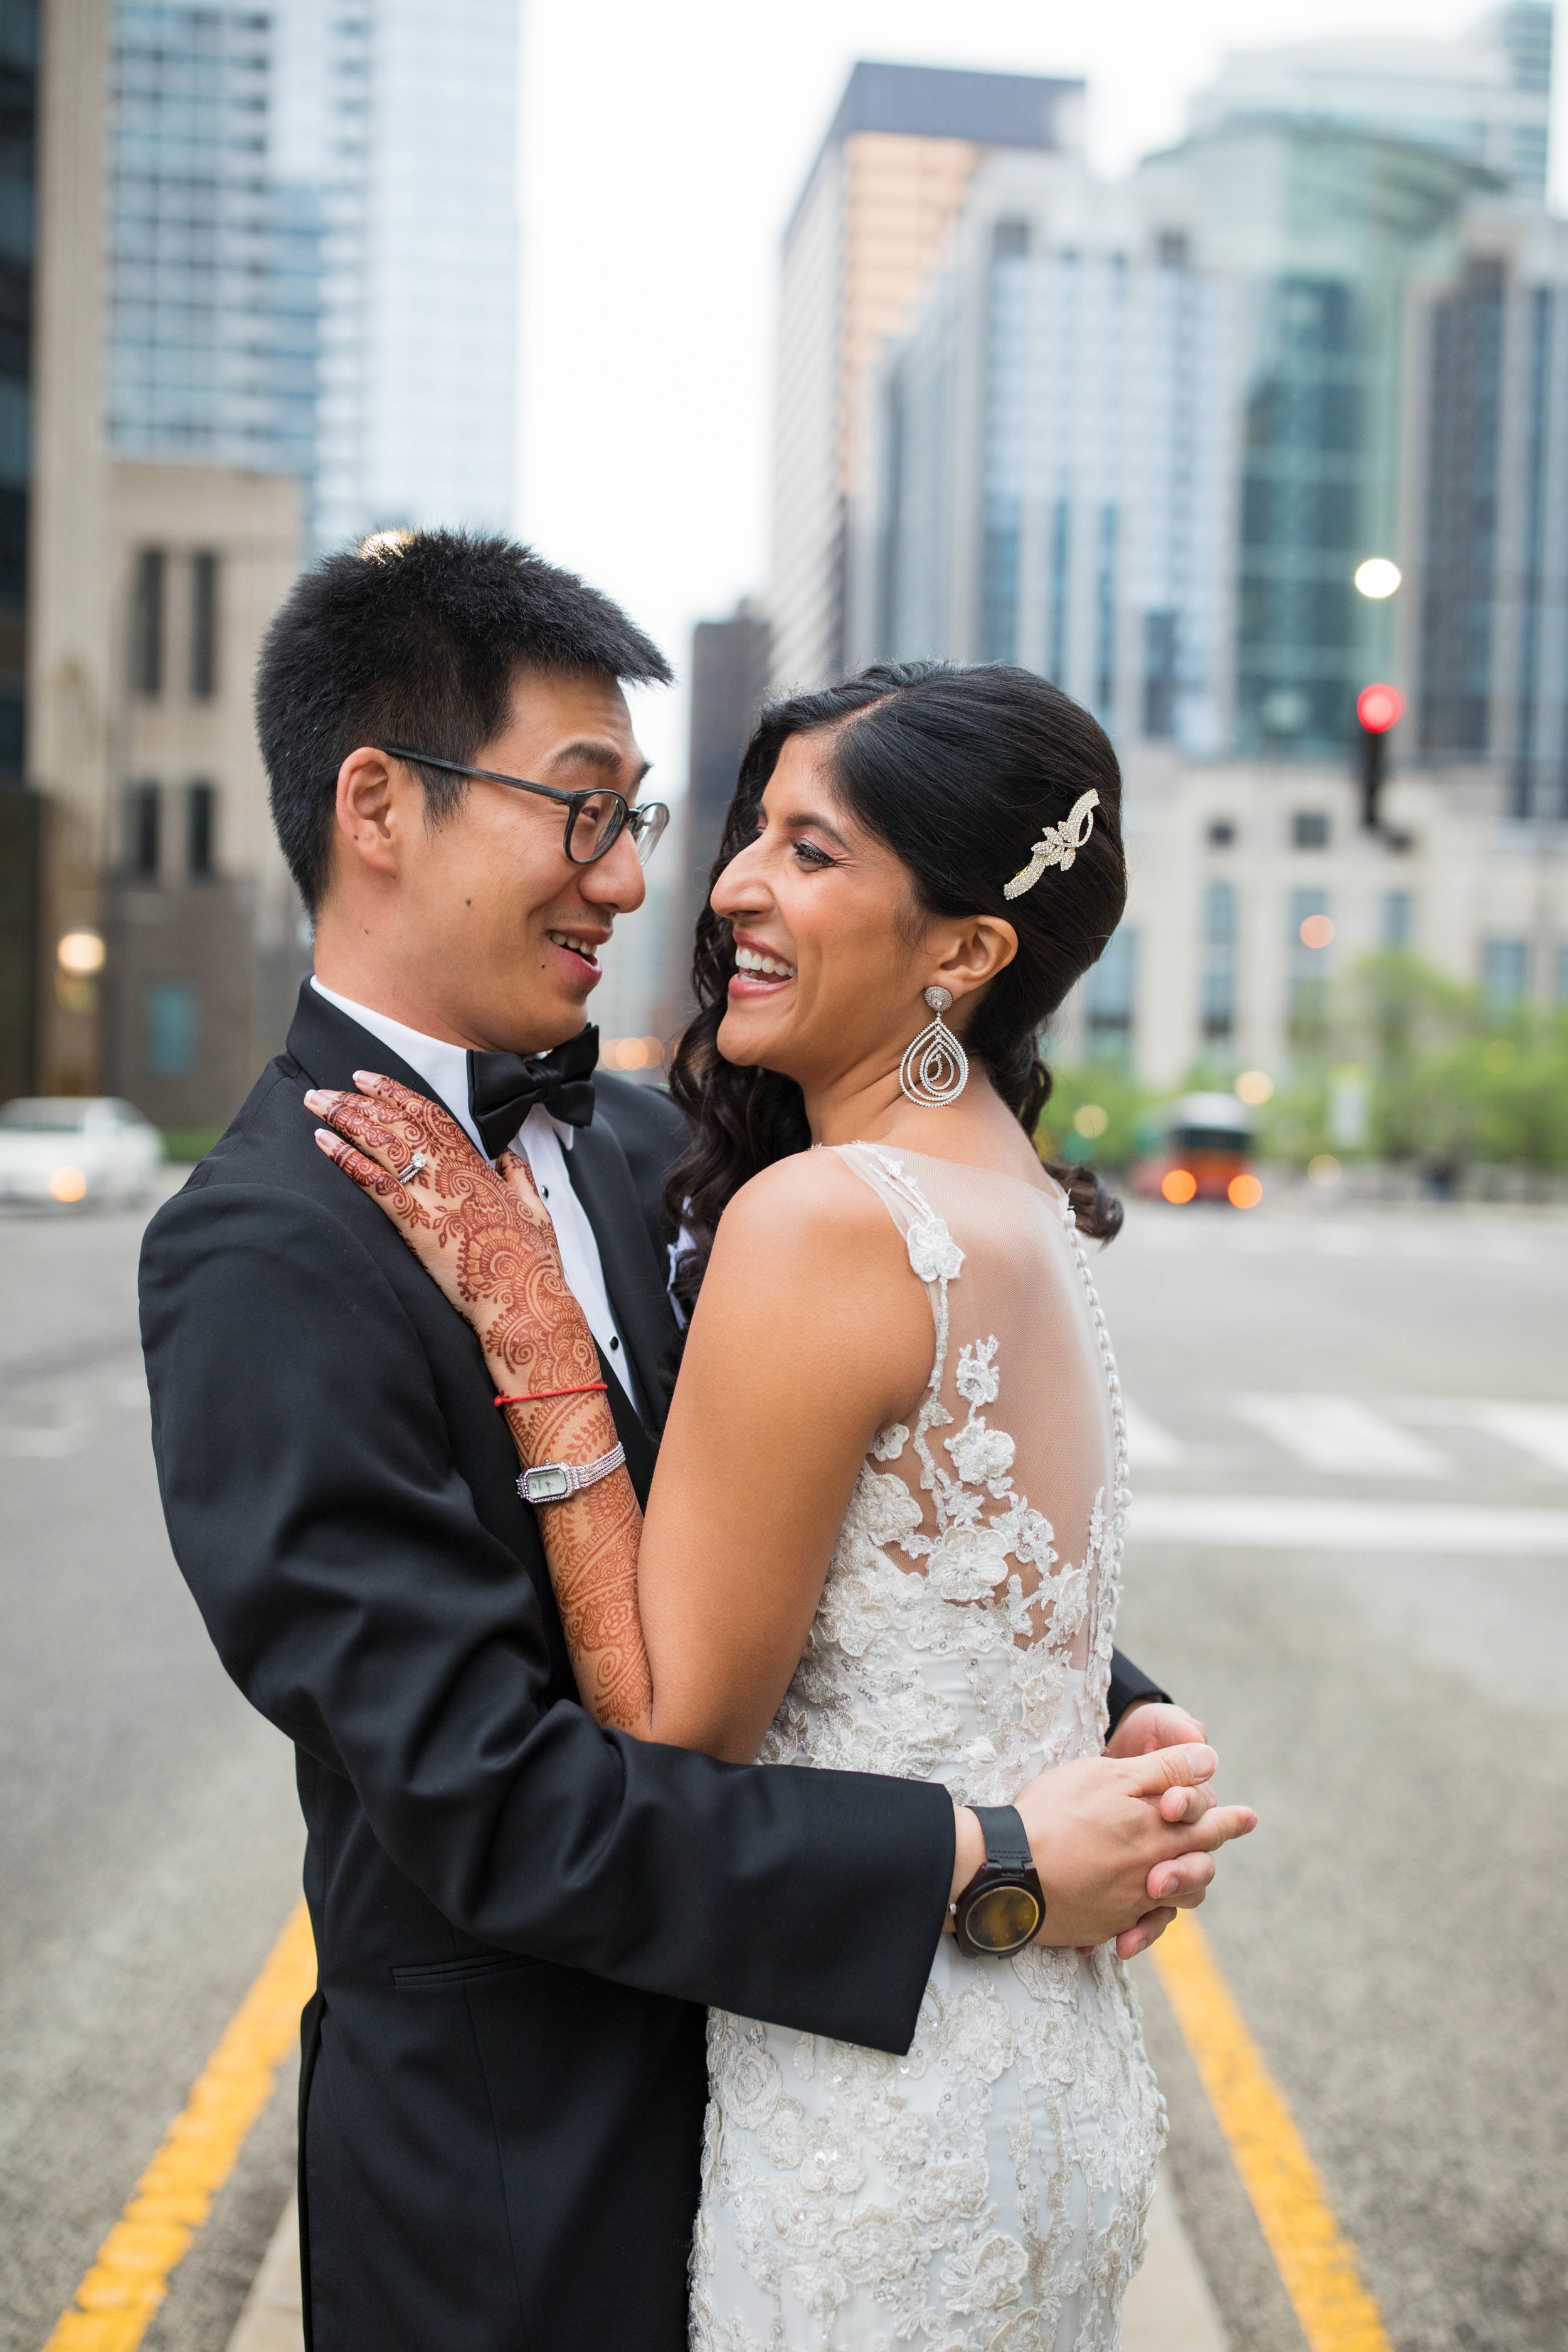 LeCapeWeddings - Chicago South Asian Wedding -102.jpg